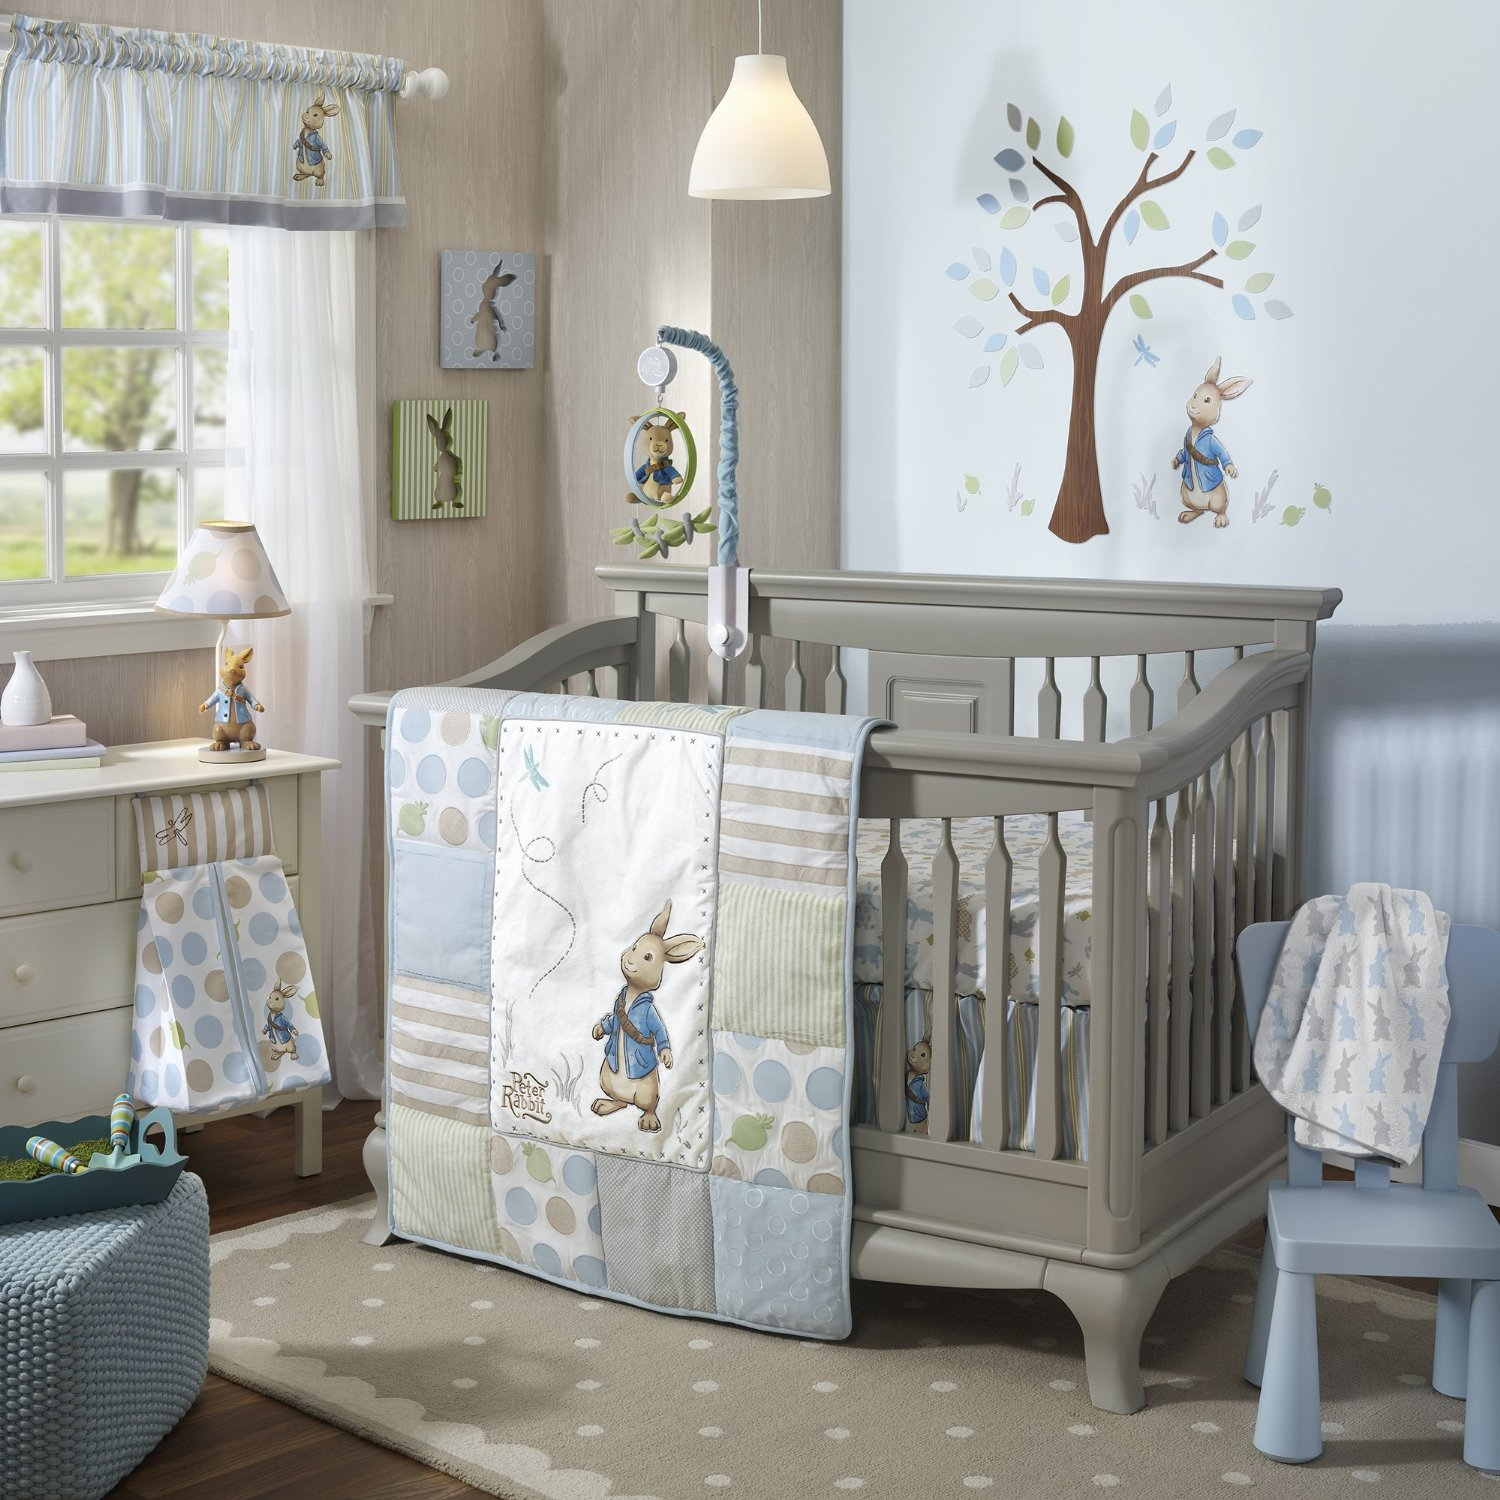 Lambs And Ivy Peter Rabbit Baby Bedding And Decor Baby Bedding And Accessories